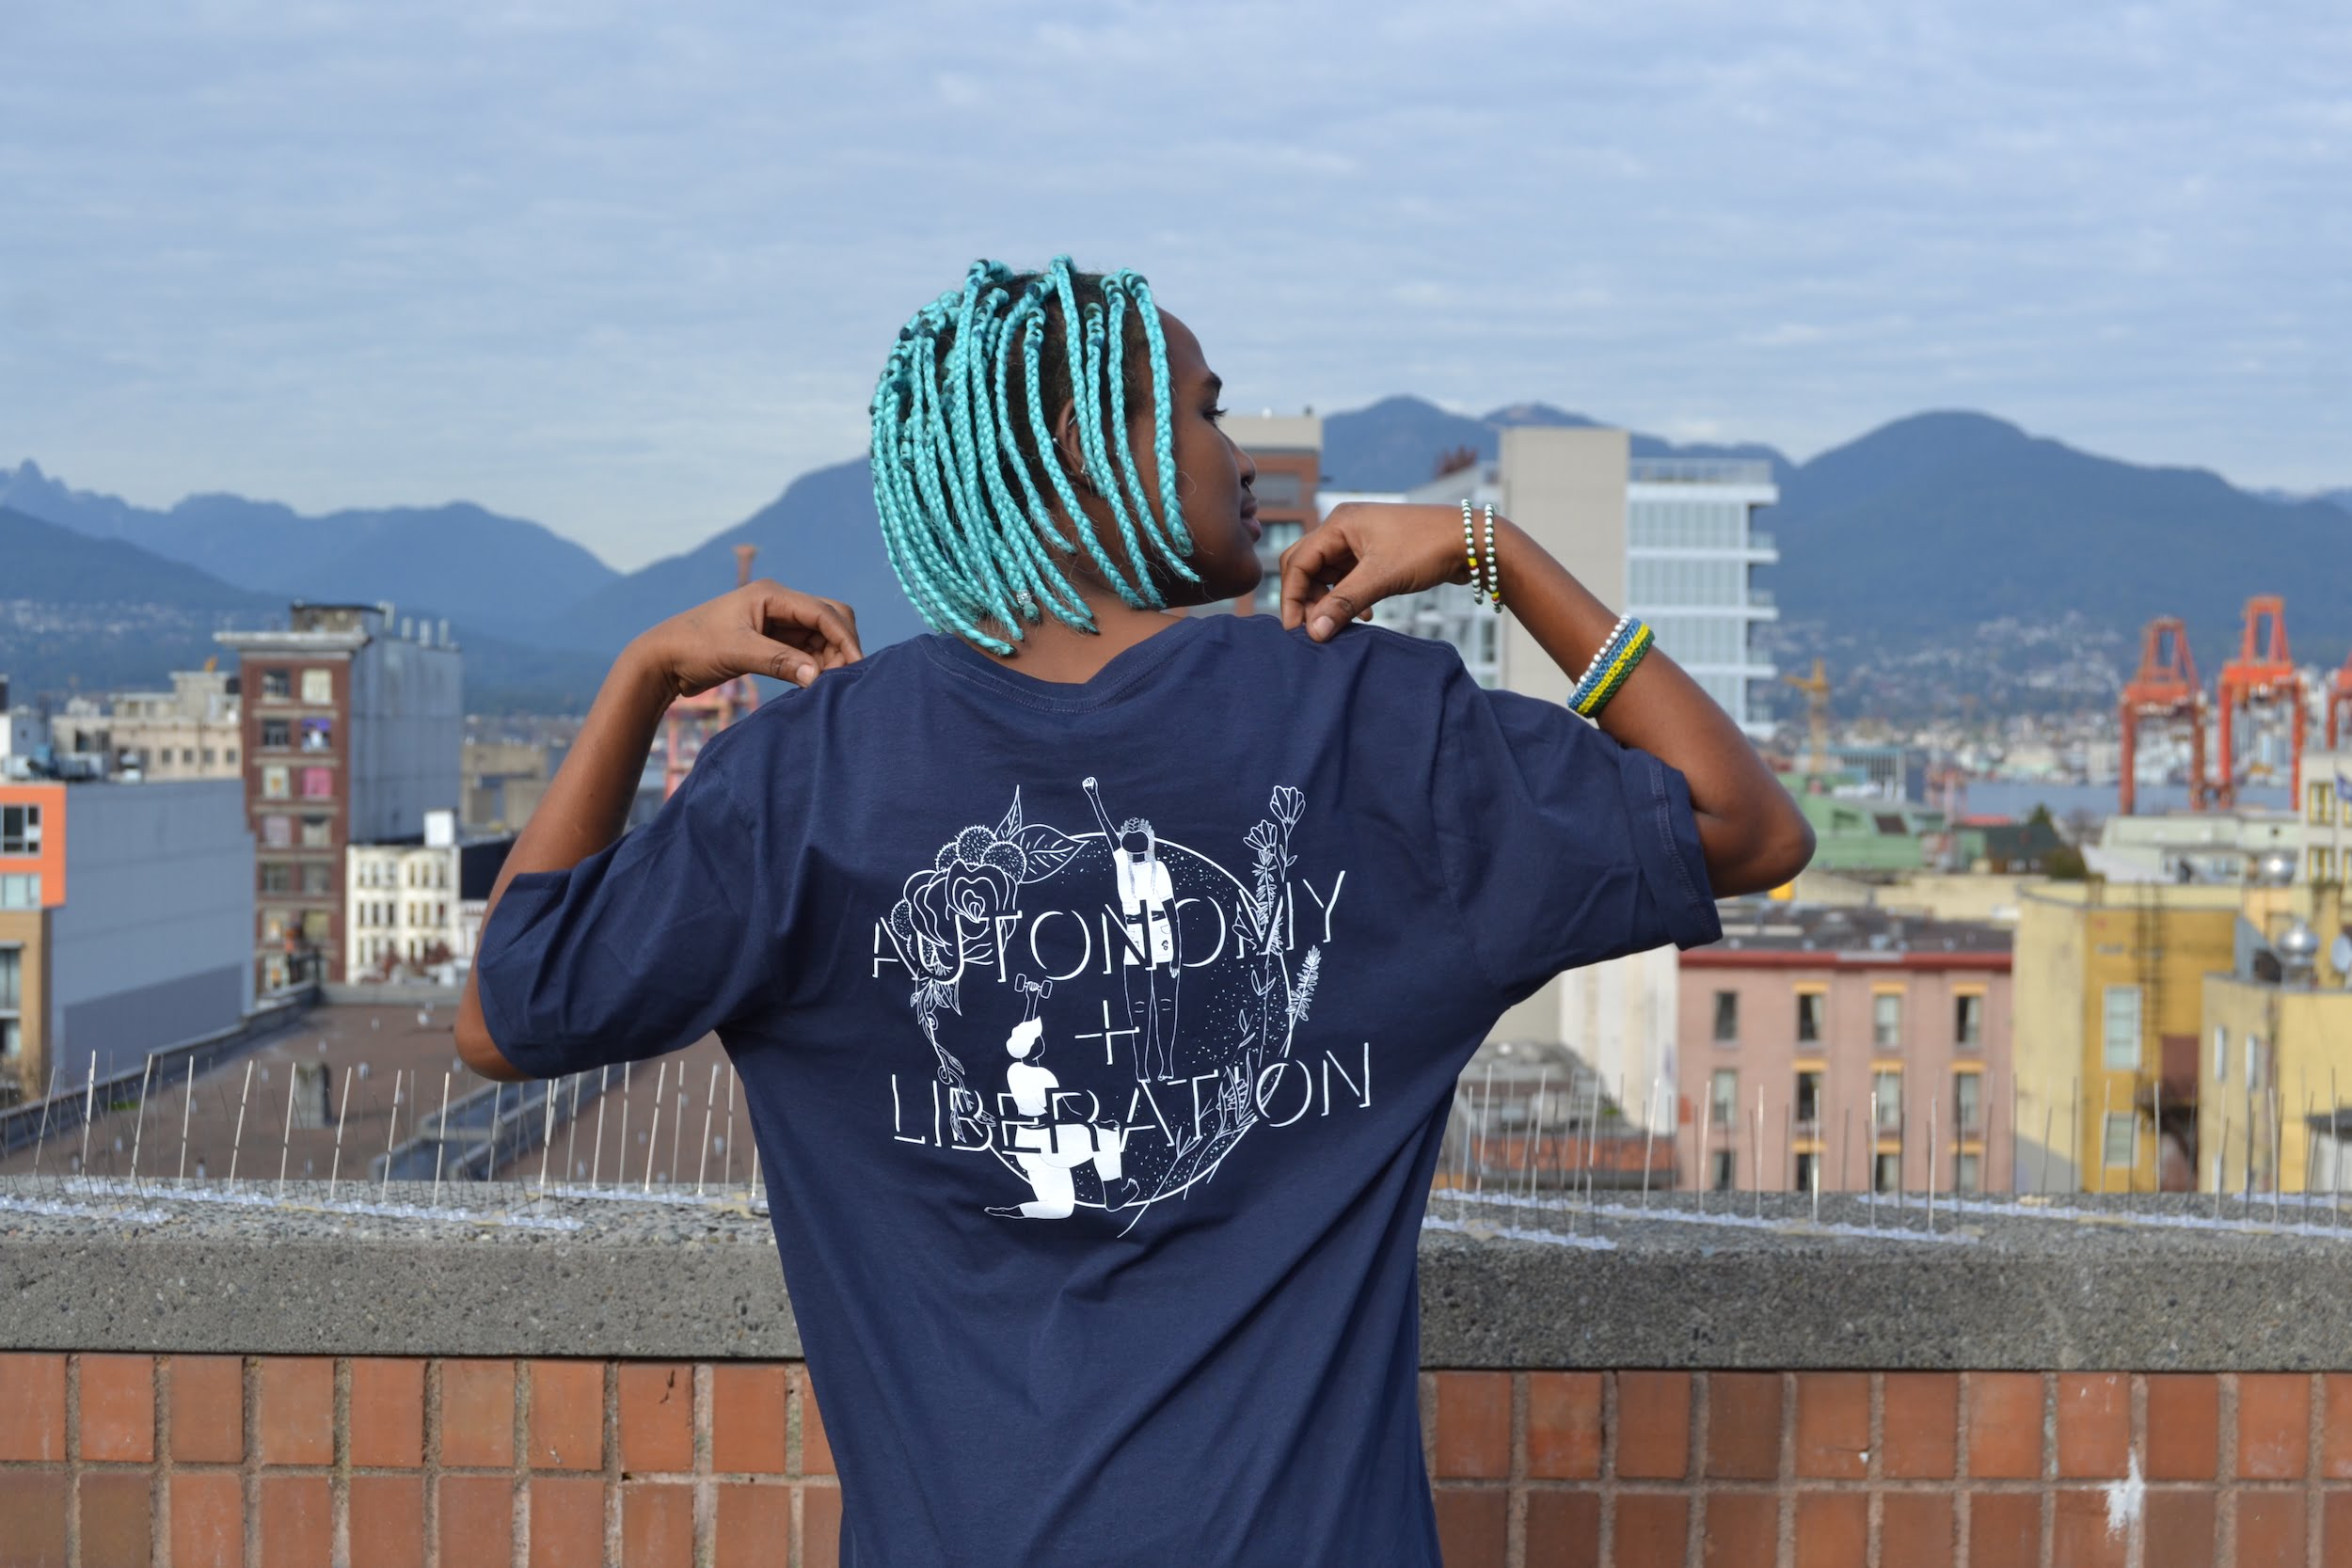 Navy Autonomy and Liberation tee on black model with turquoise hair